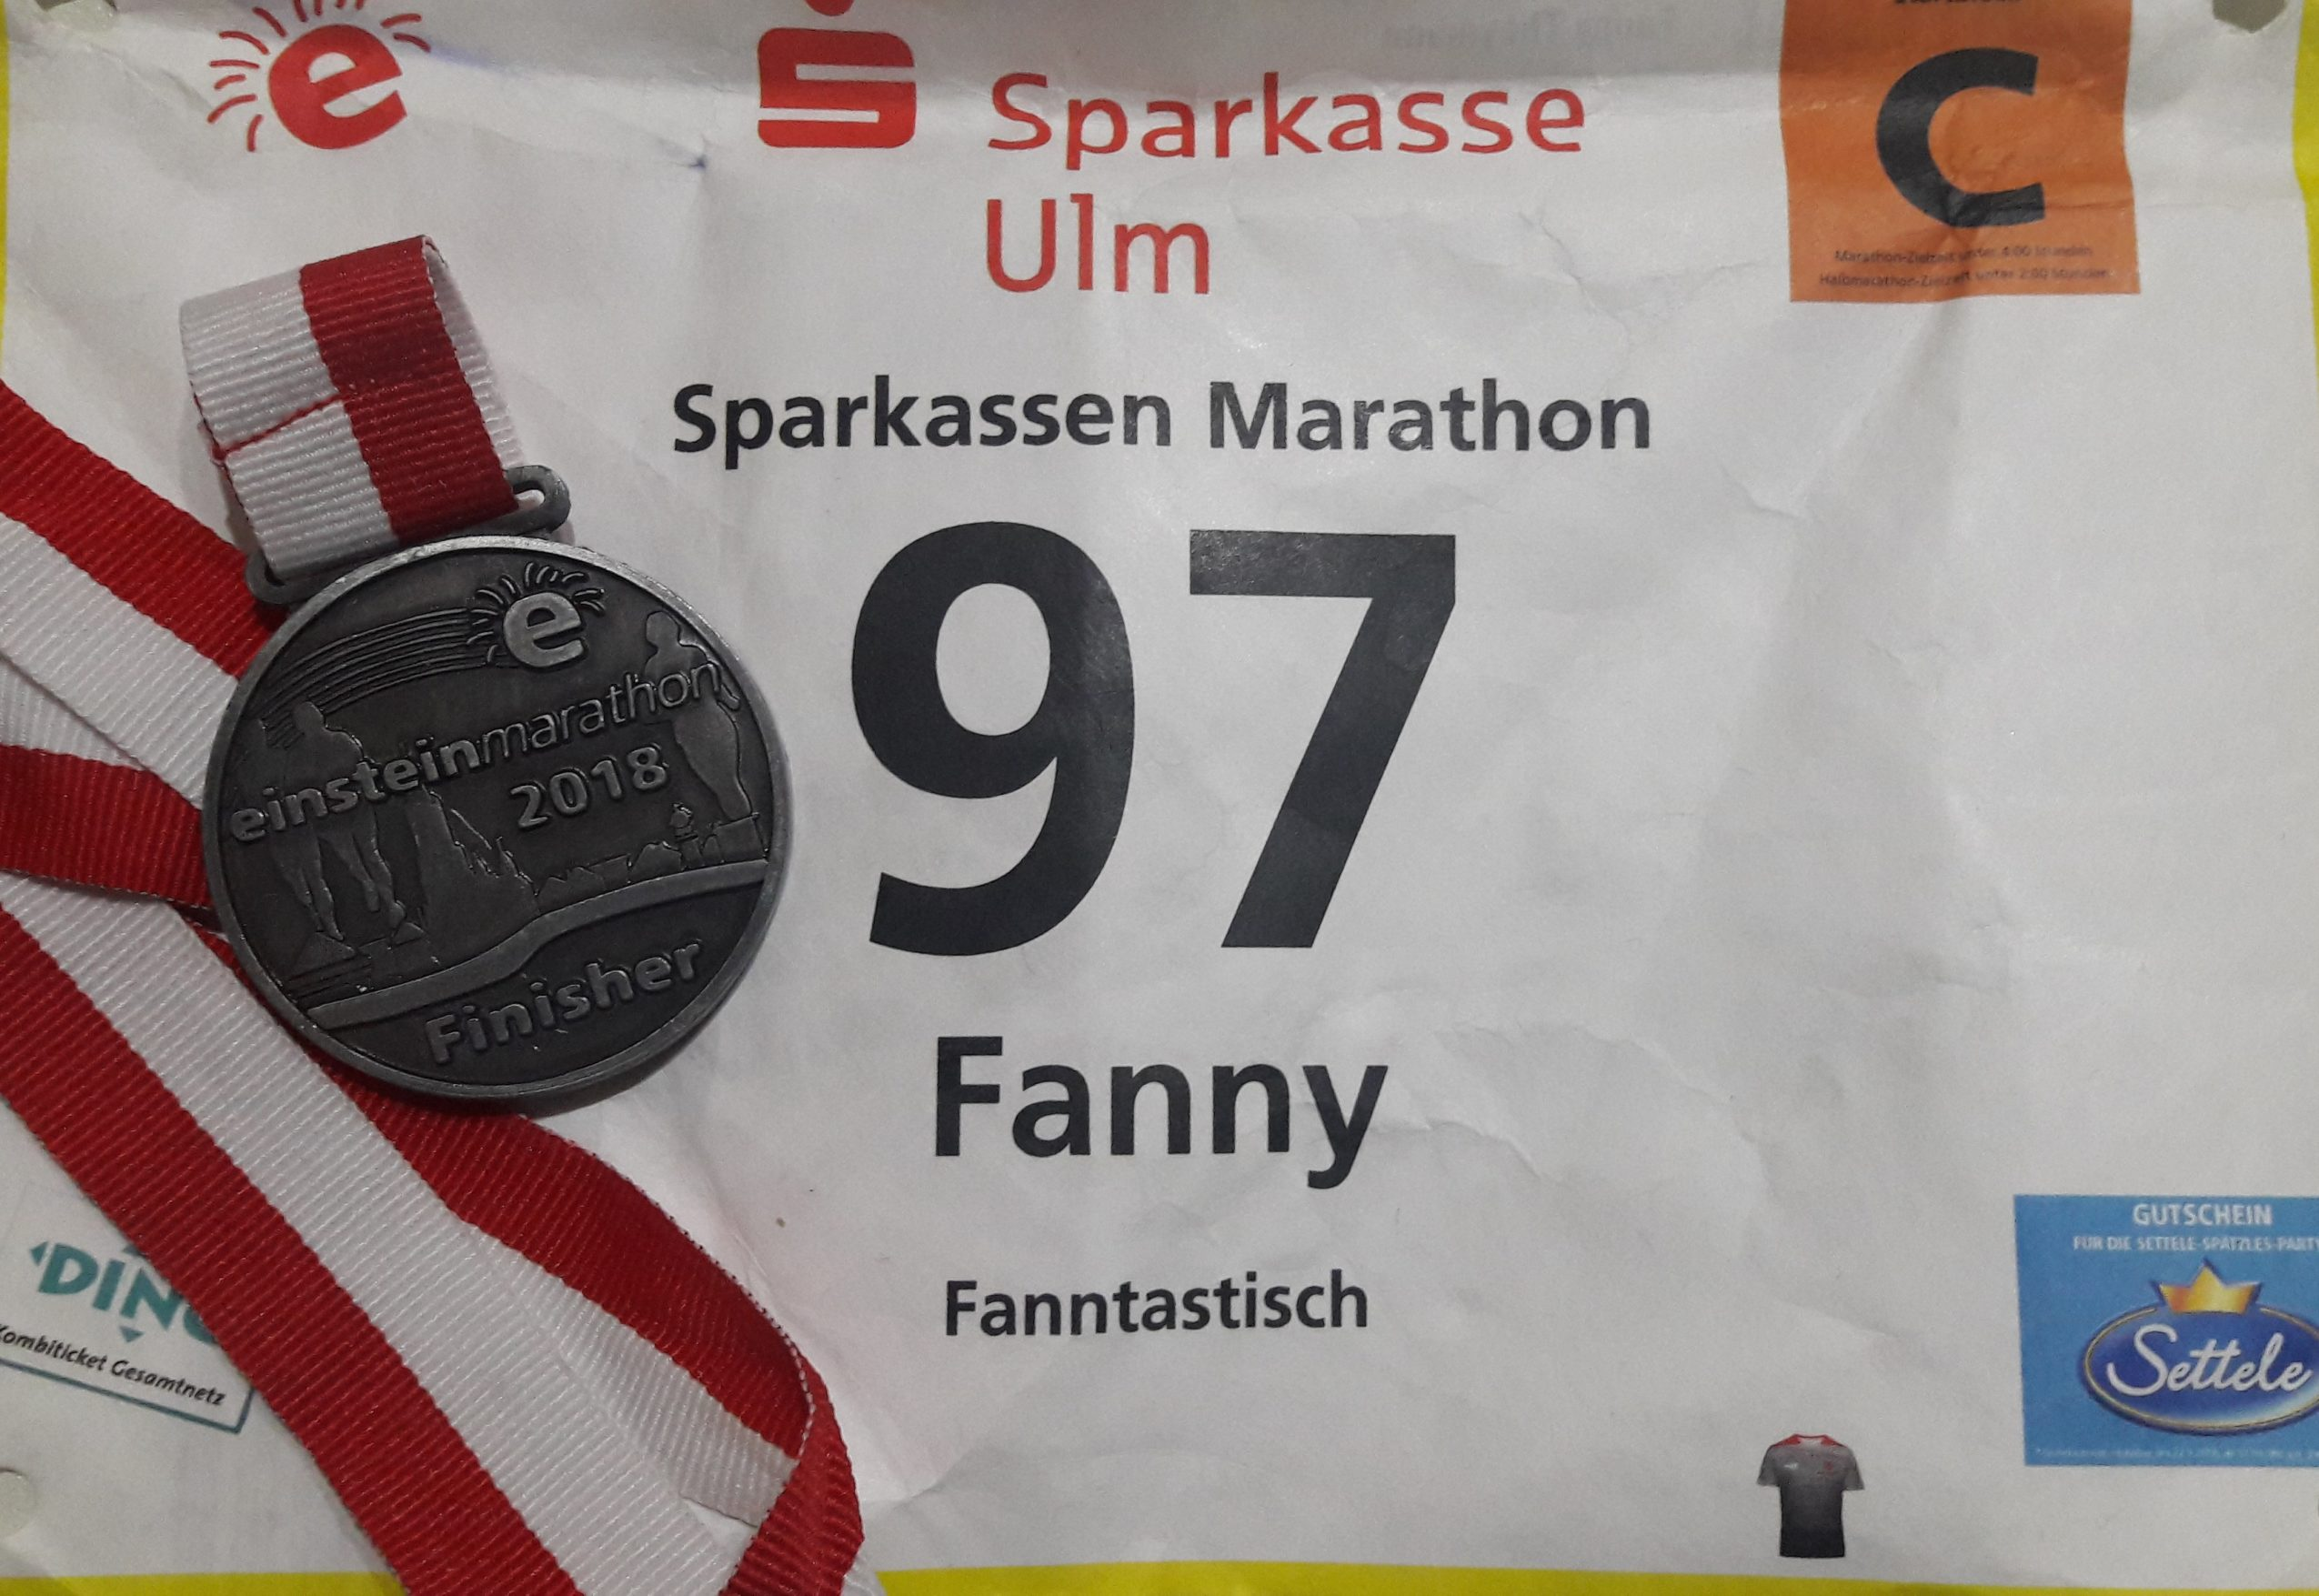 Fanny-Theymann-Einsteinmarathon-Ulm-2018-Finisher-3